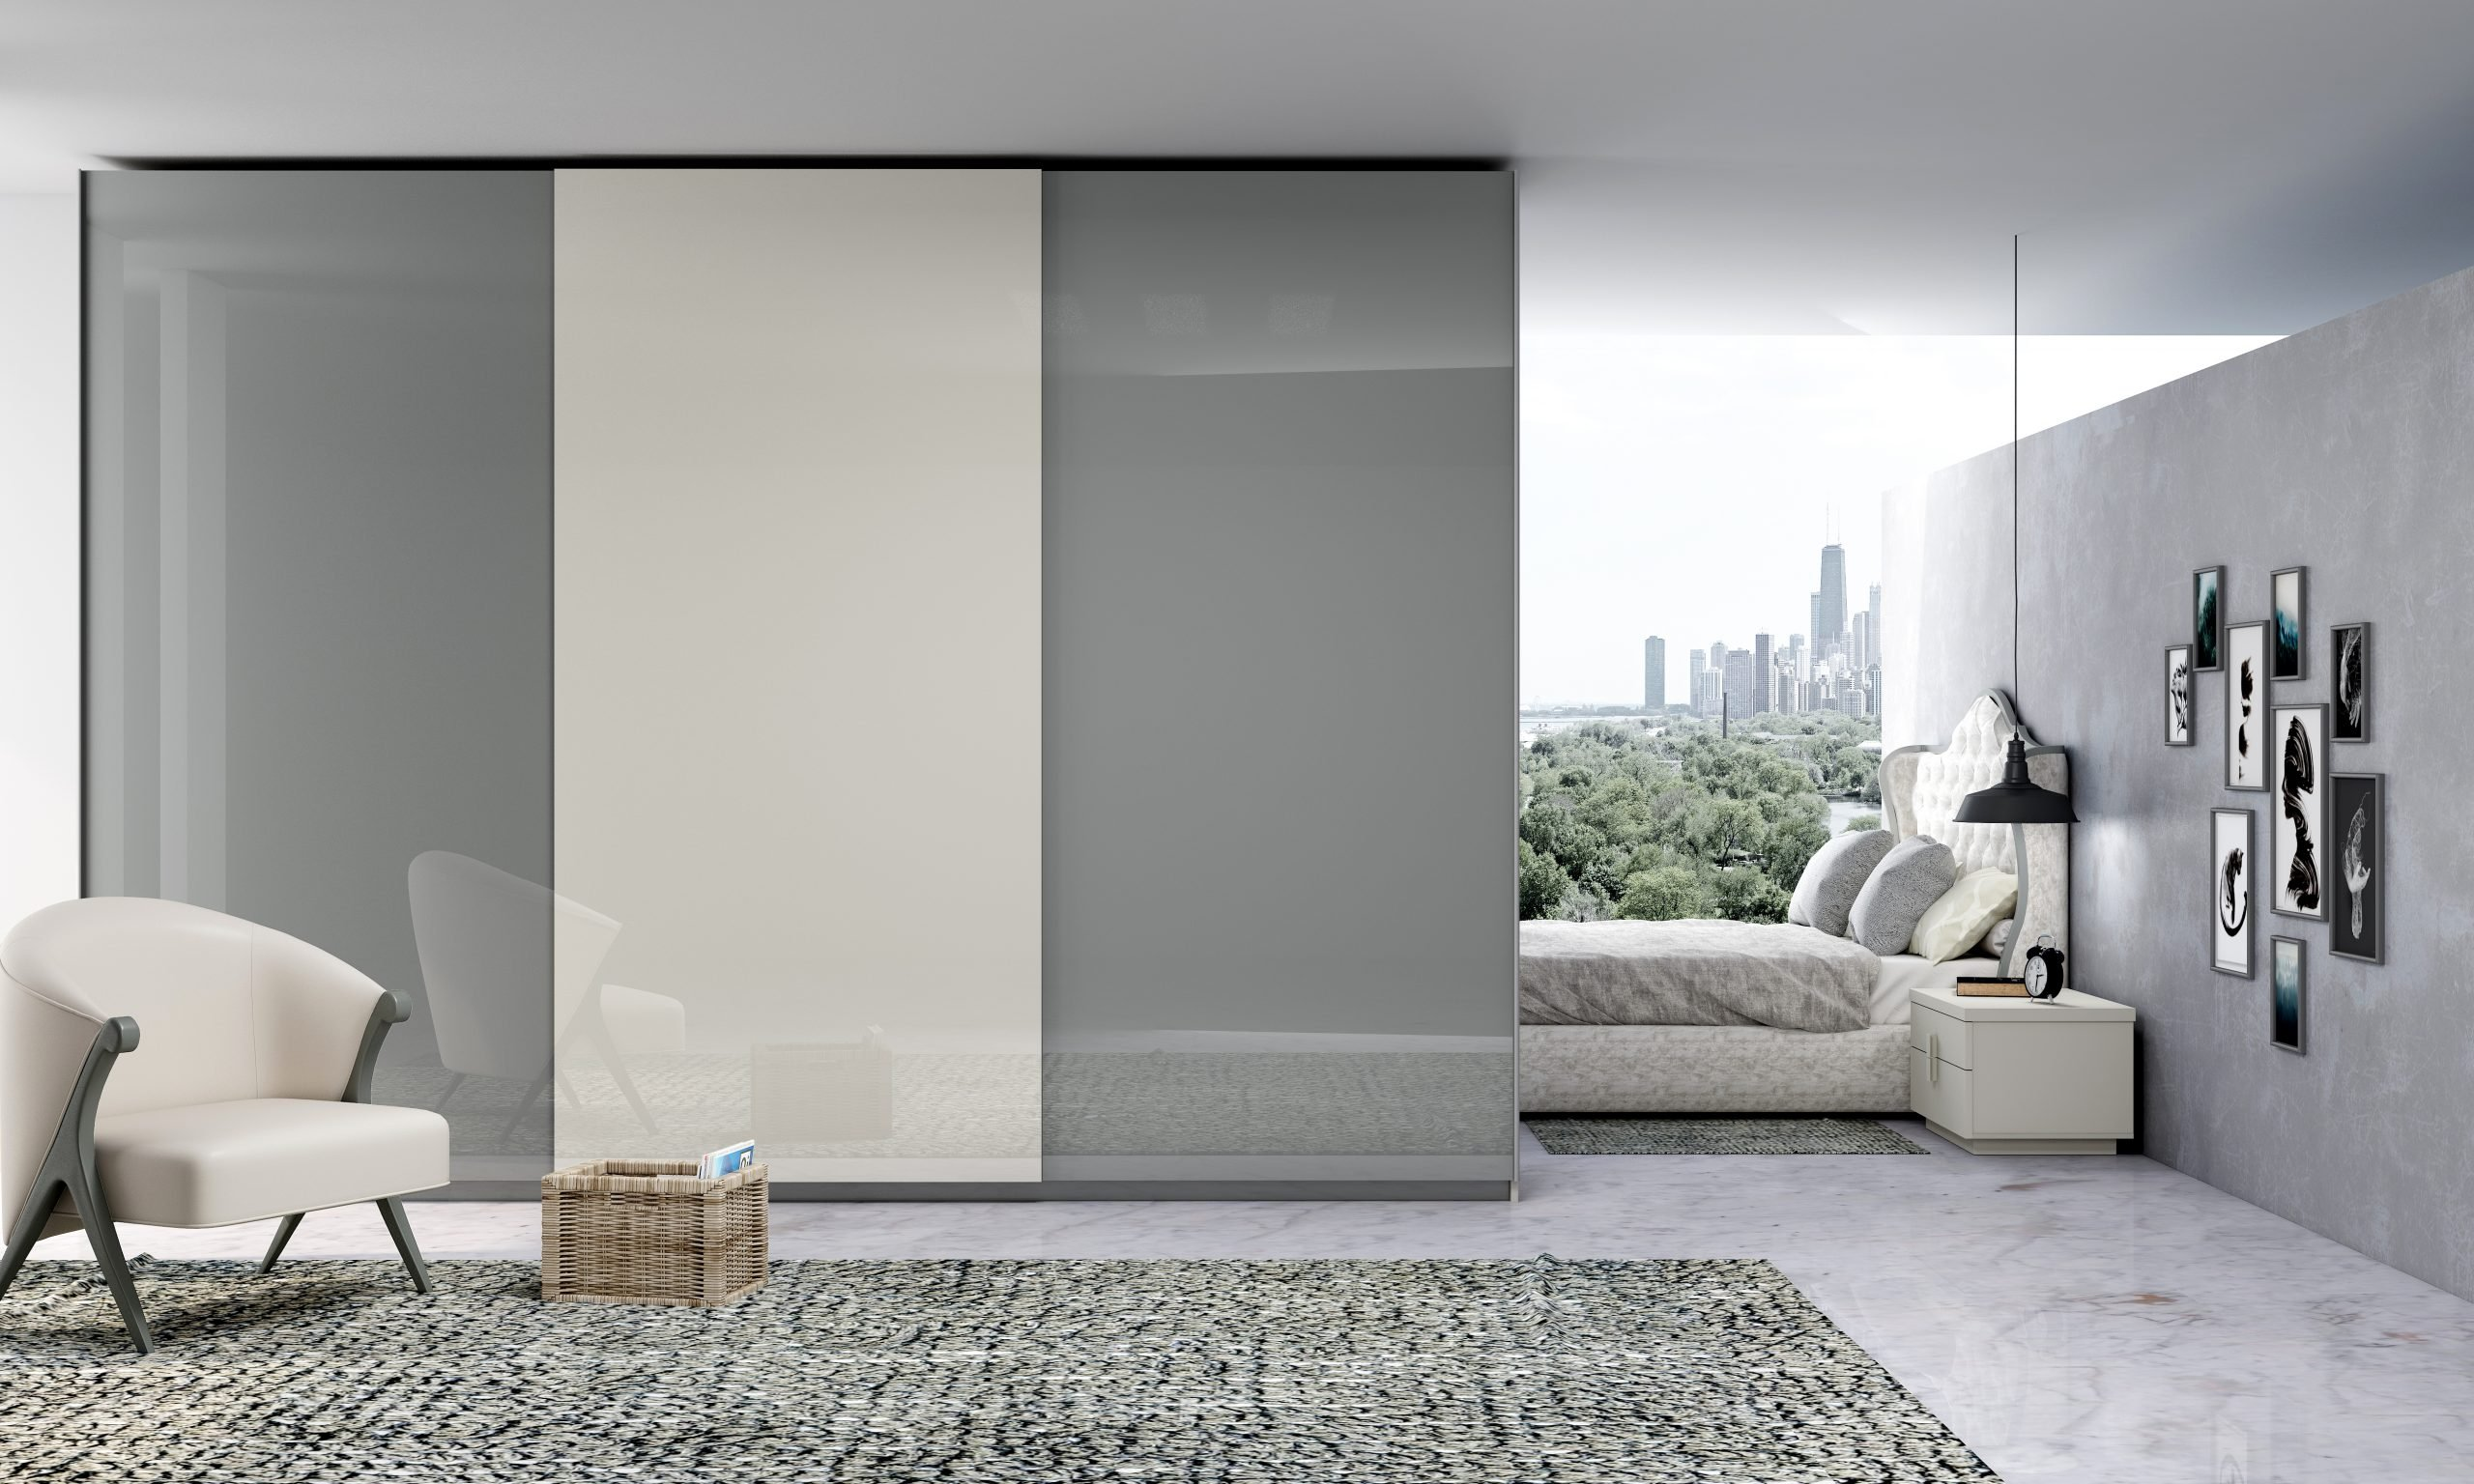 Fitted Sliding Wardrobe with Frameless Top hung Doors in Combination of Dust Grey and White Gloss